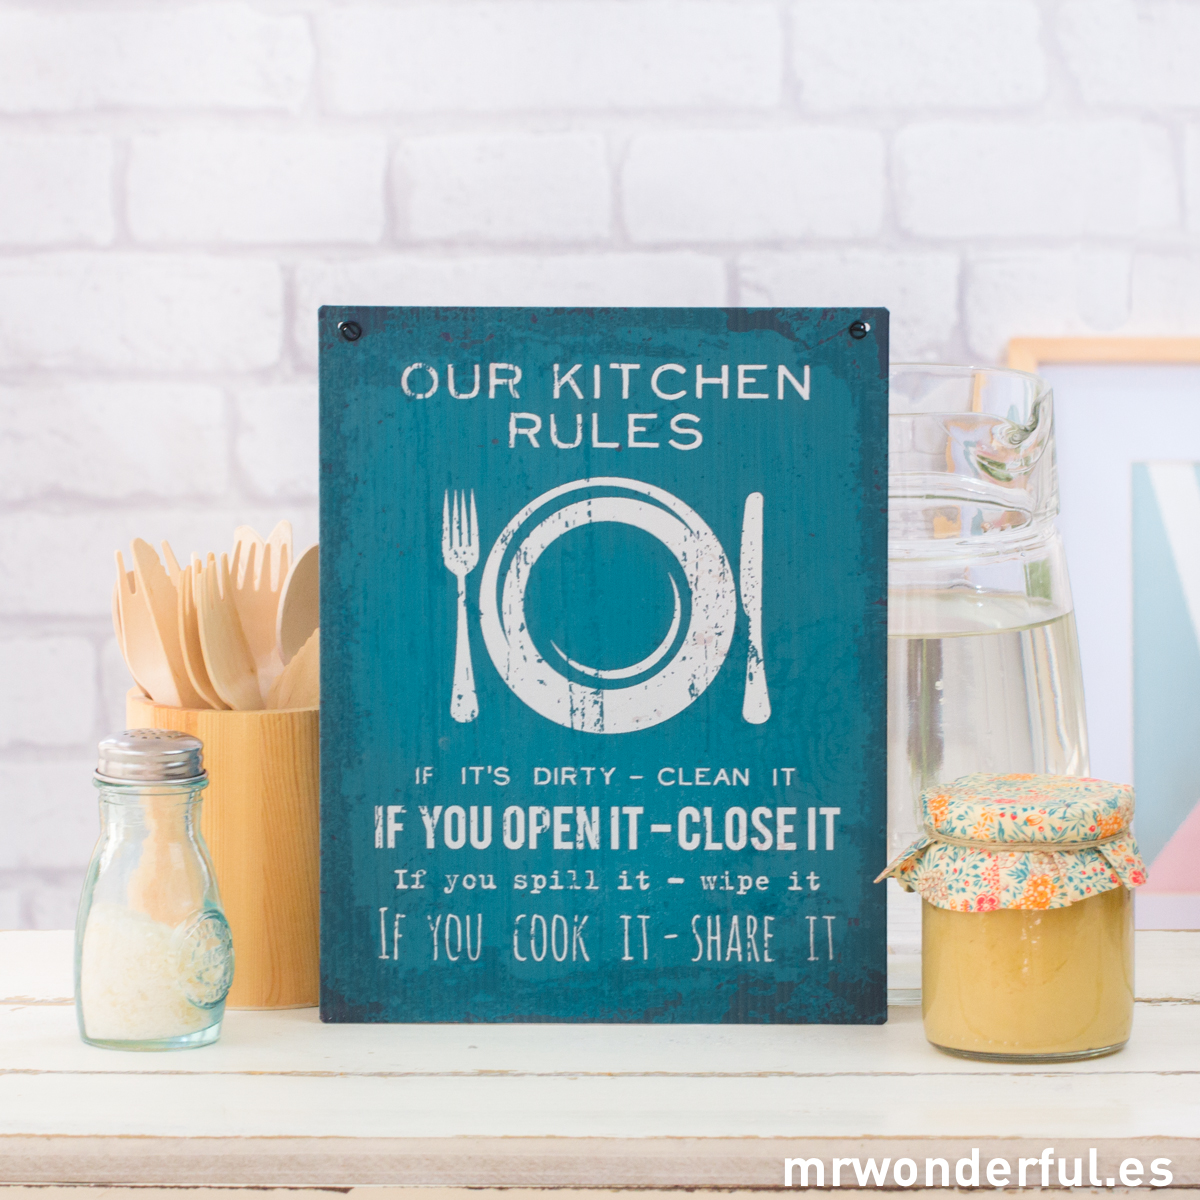 mrwonderful_WP1160_2_placa-metalica-kitchen-rules-azul-2